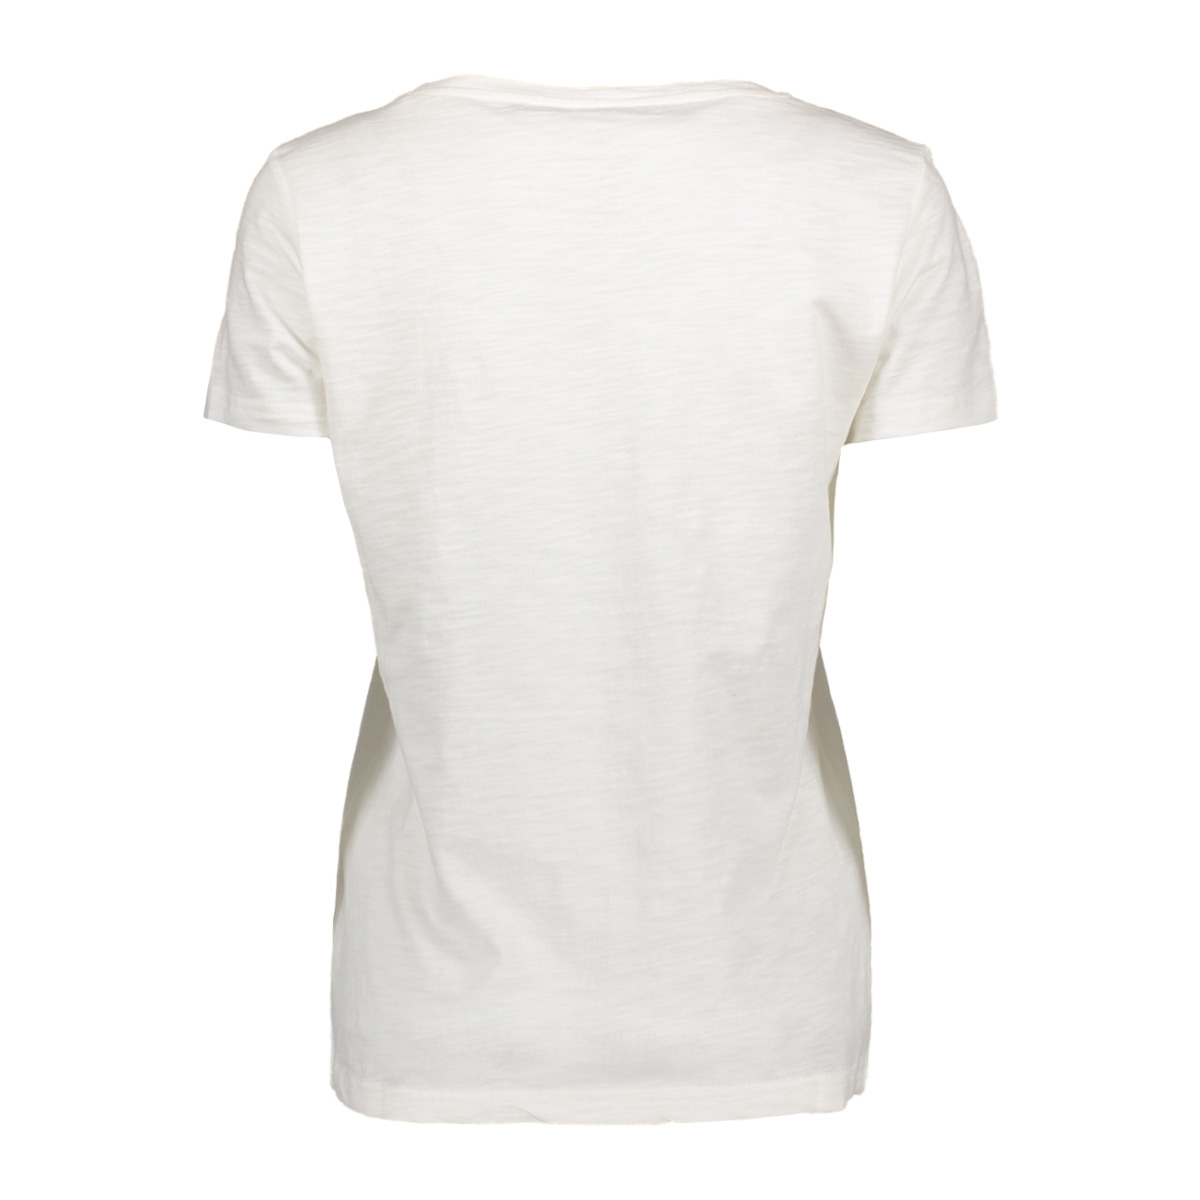 1055536.00.70 tom tailor t-shirt 8210